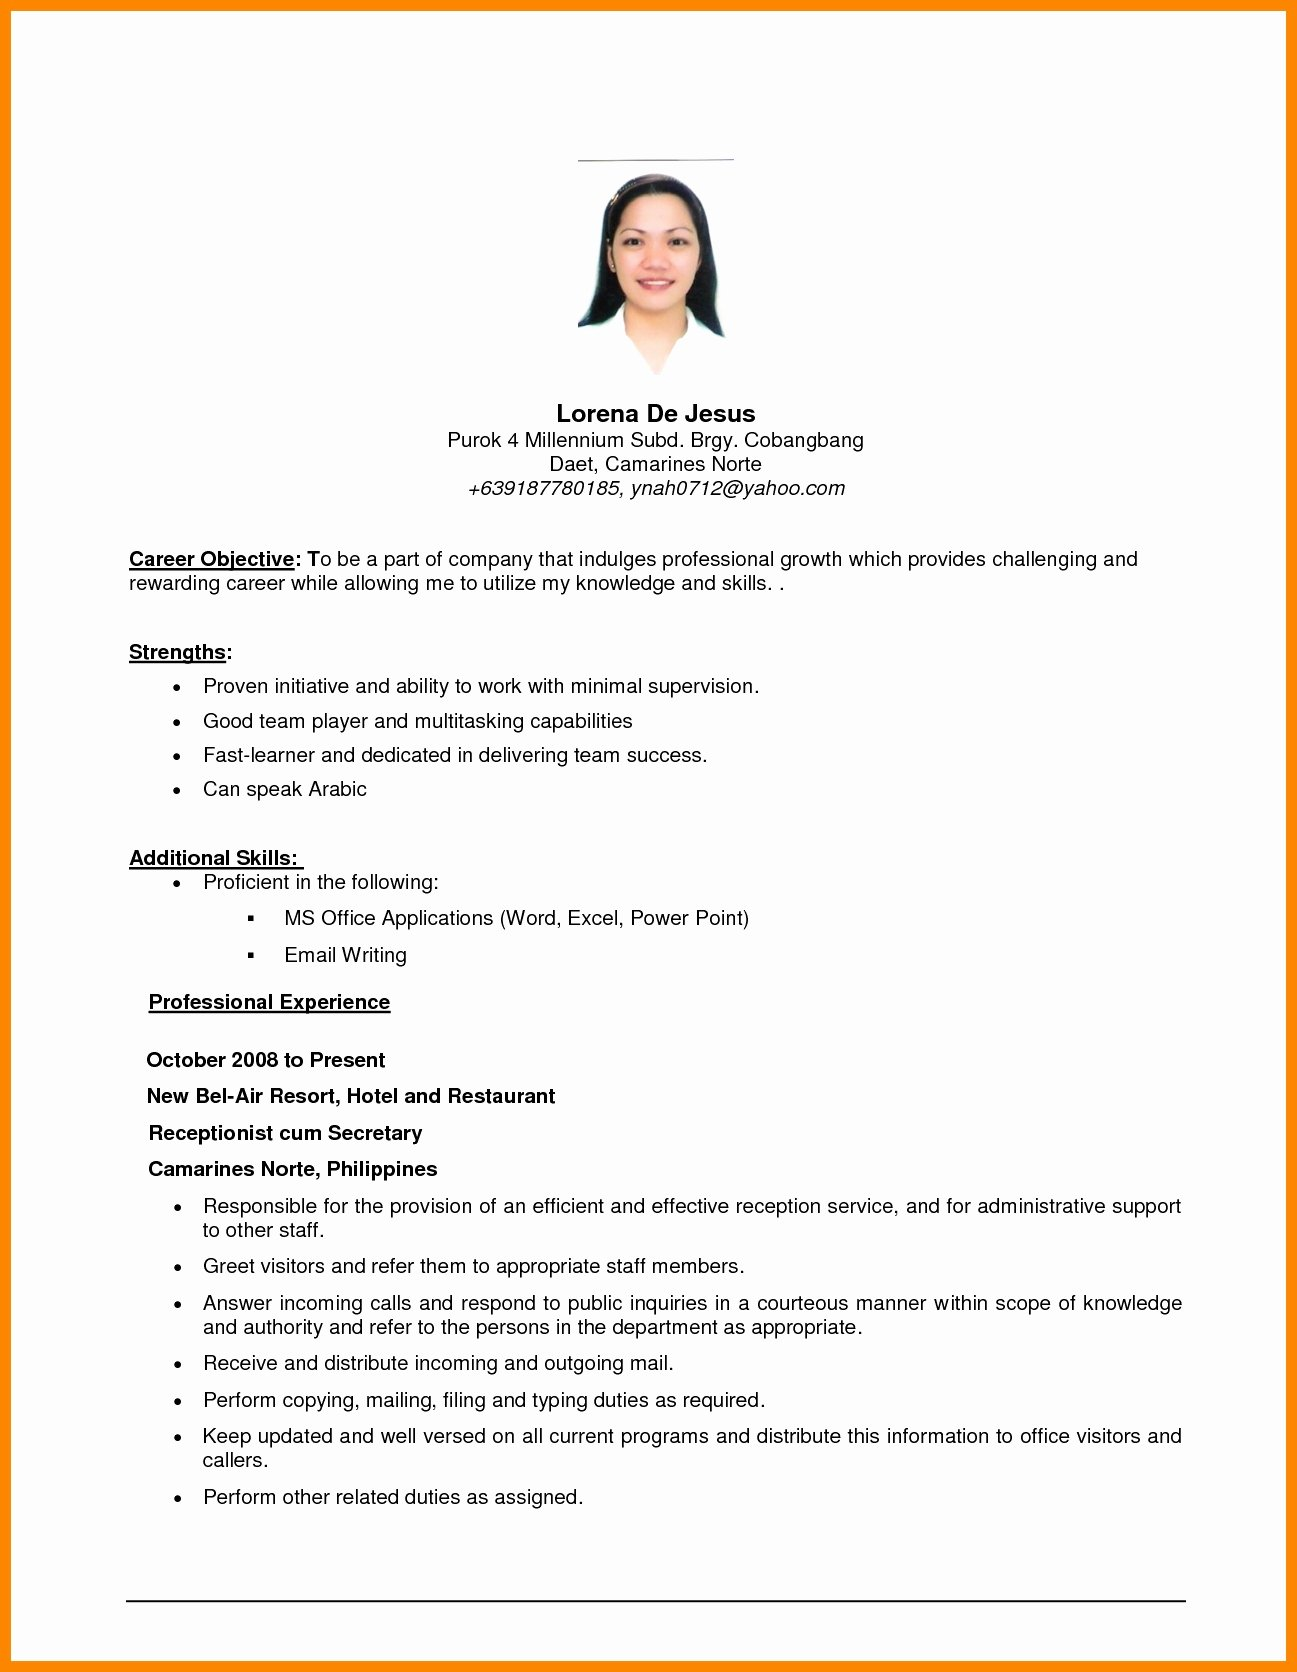 Generic Objective for Resume Inspirational General Resume Objective Examples